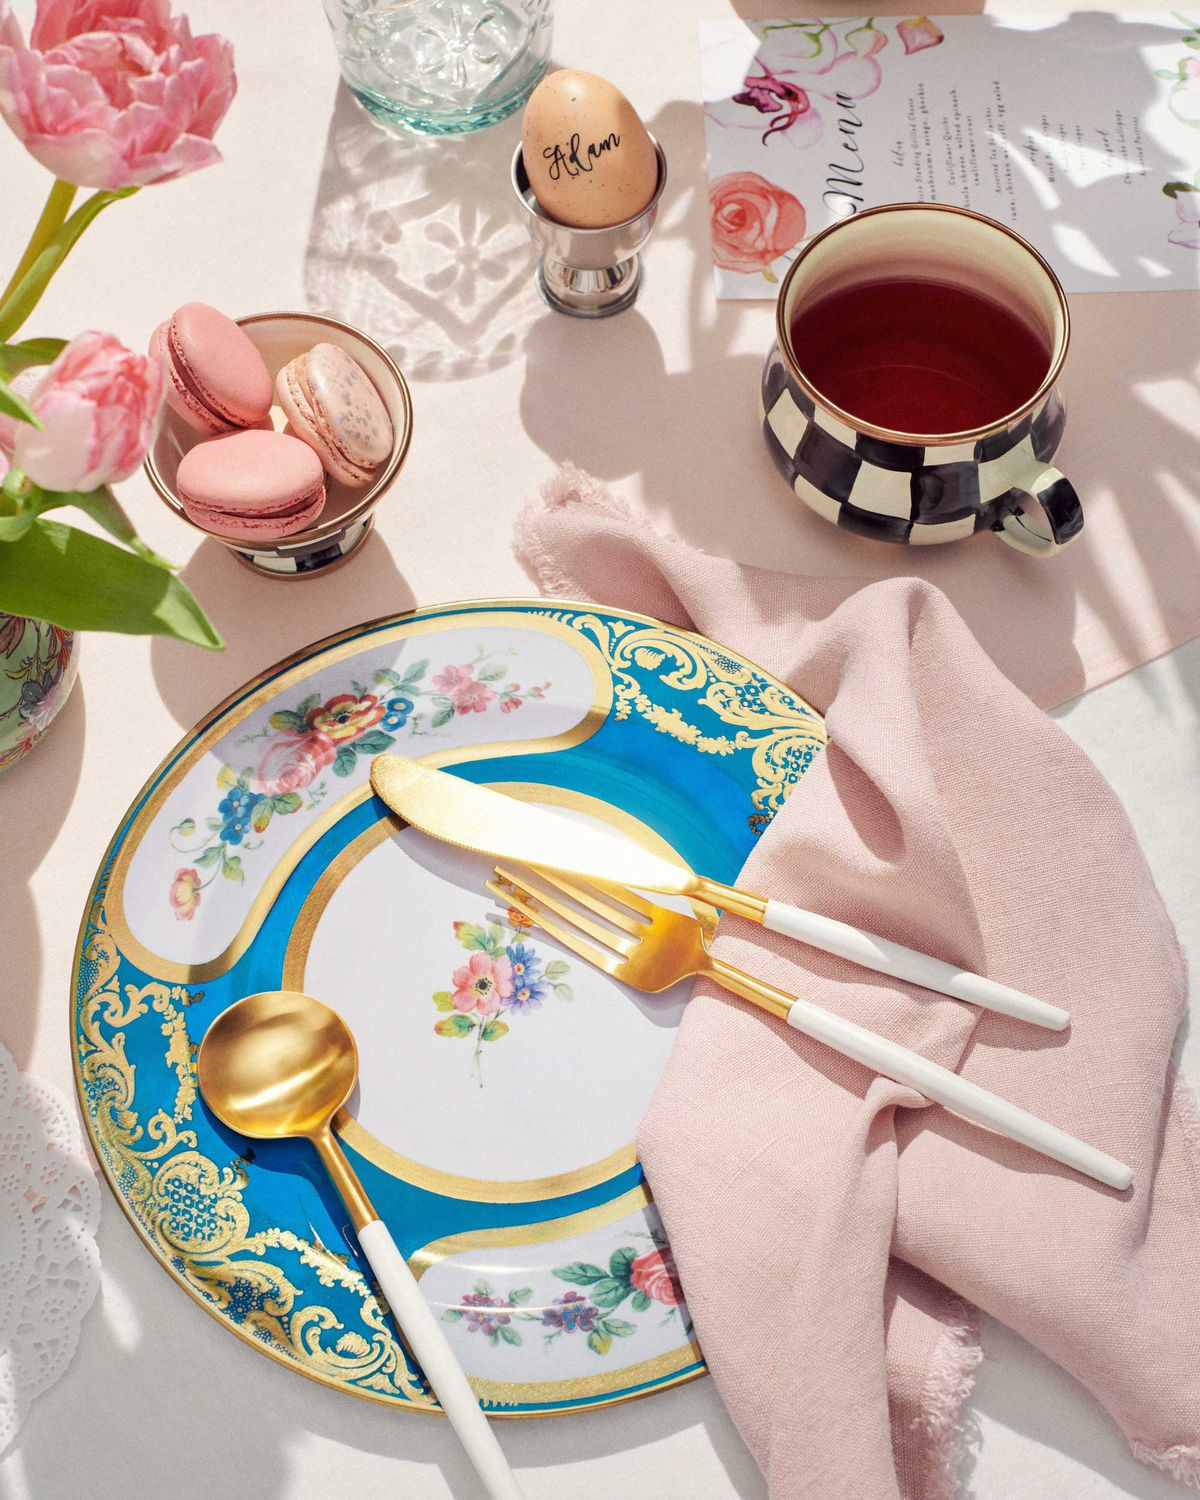 Colorful plate with gold and white flatware.